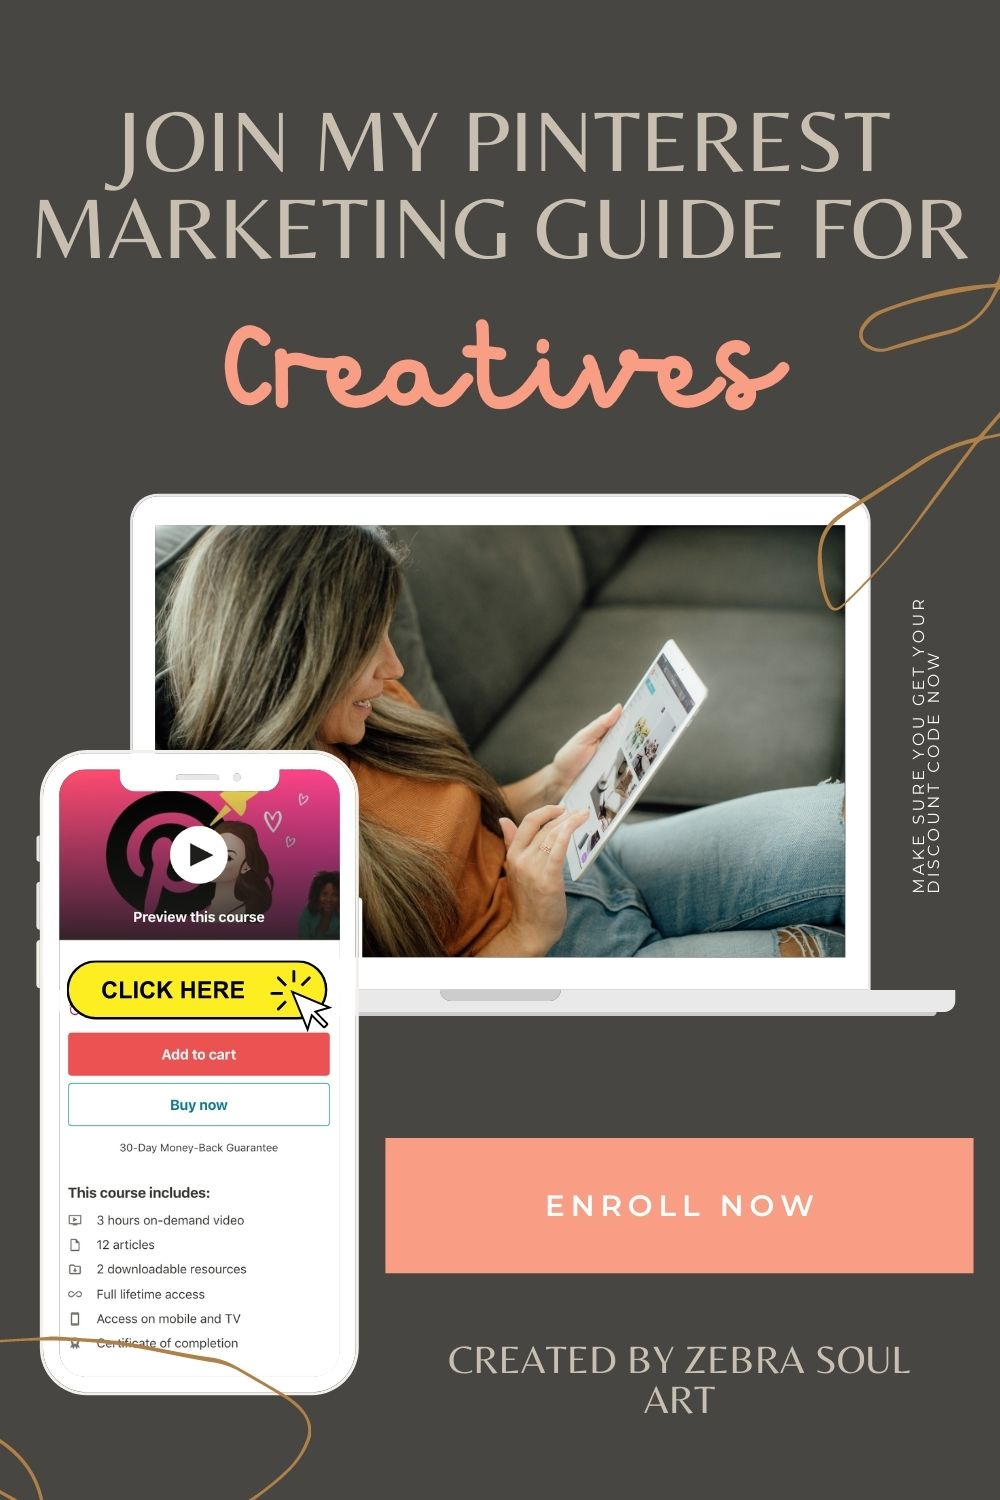 white woman sitting laid back on her sofa and typing on her tablet. her image is inside a computer mockup and it says pinterest marketing guide for creatives, online course by zebra soul art